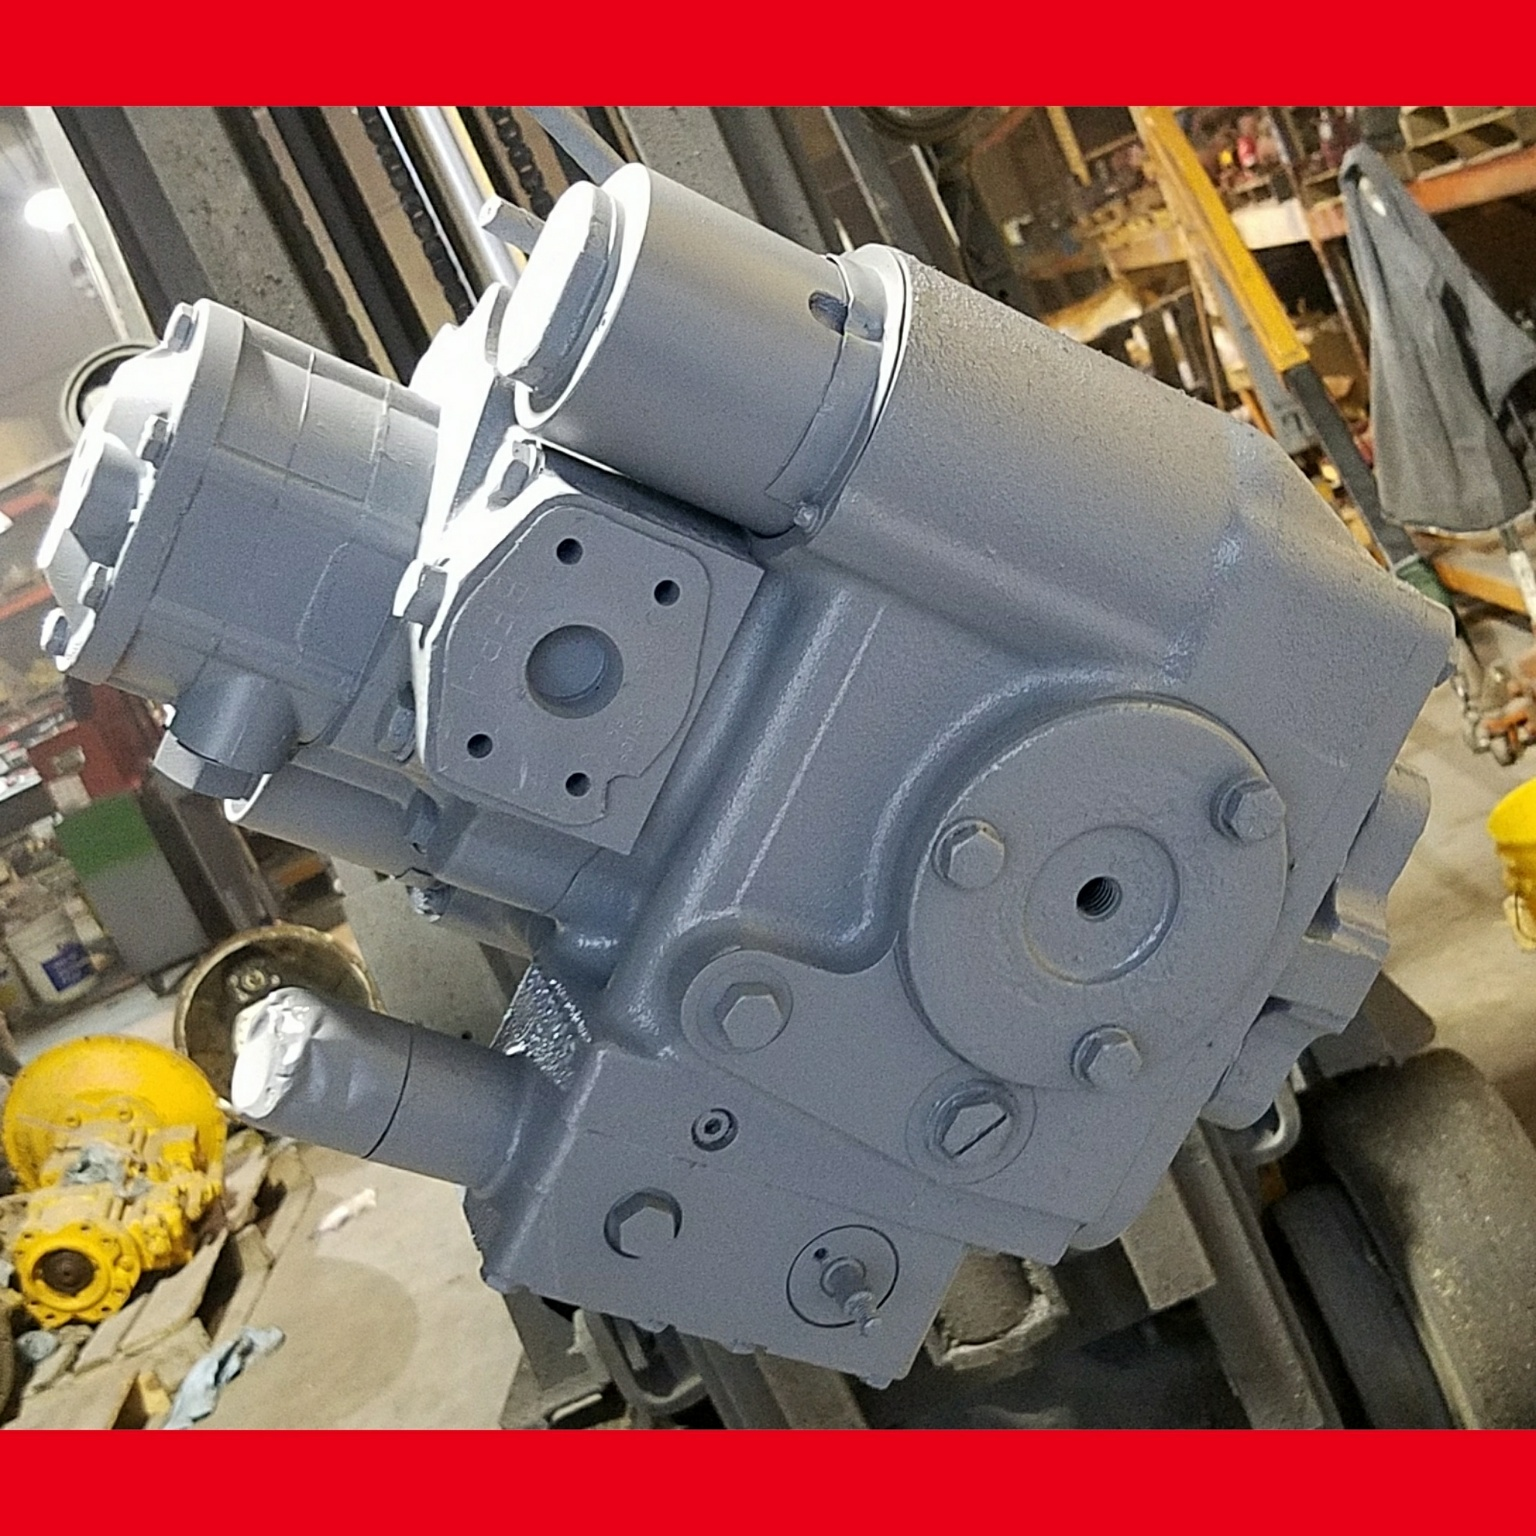 What to Expect on a Sundstrand Sauer Danfoss Pump Repair